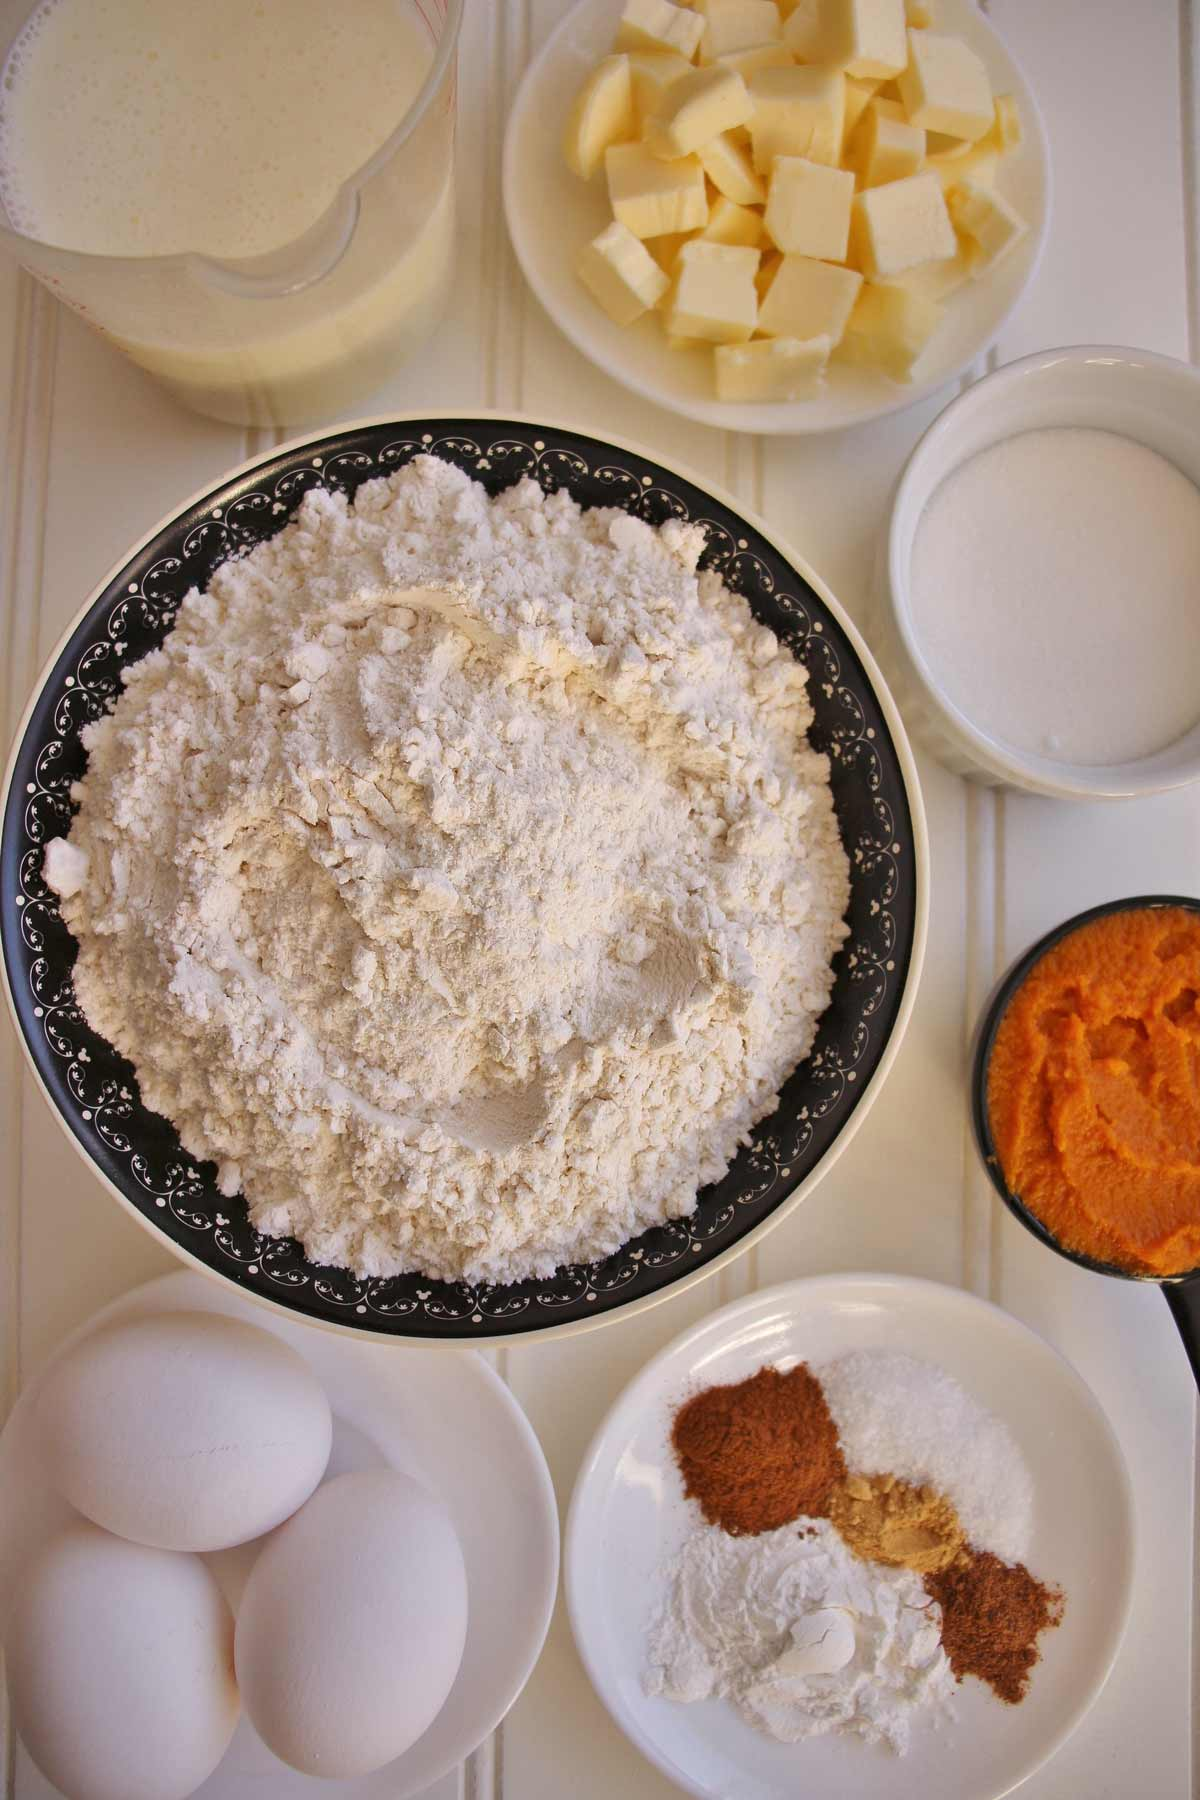 Buttermilk, cubed butter, flour, sugar, pumpkin puree, eggs, and spices on a white surface.